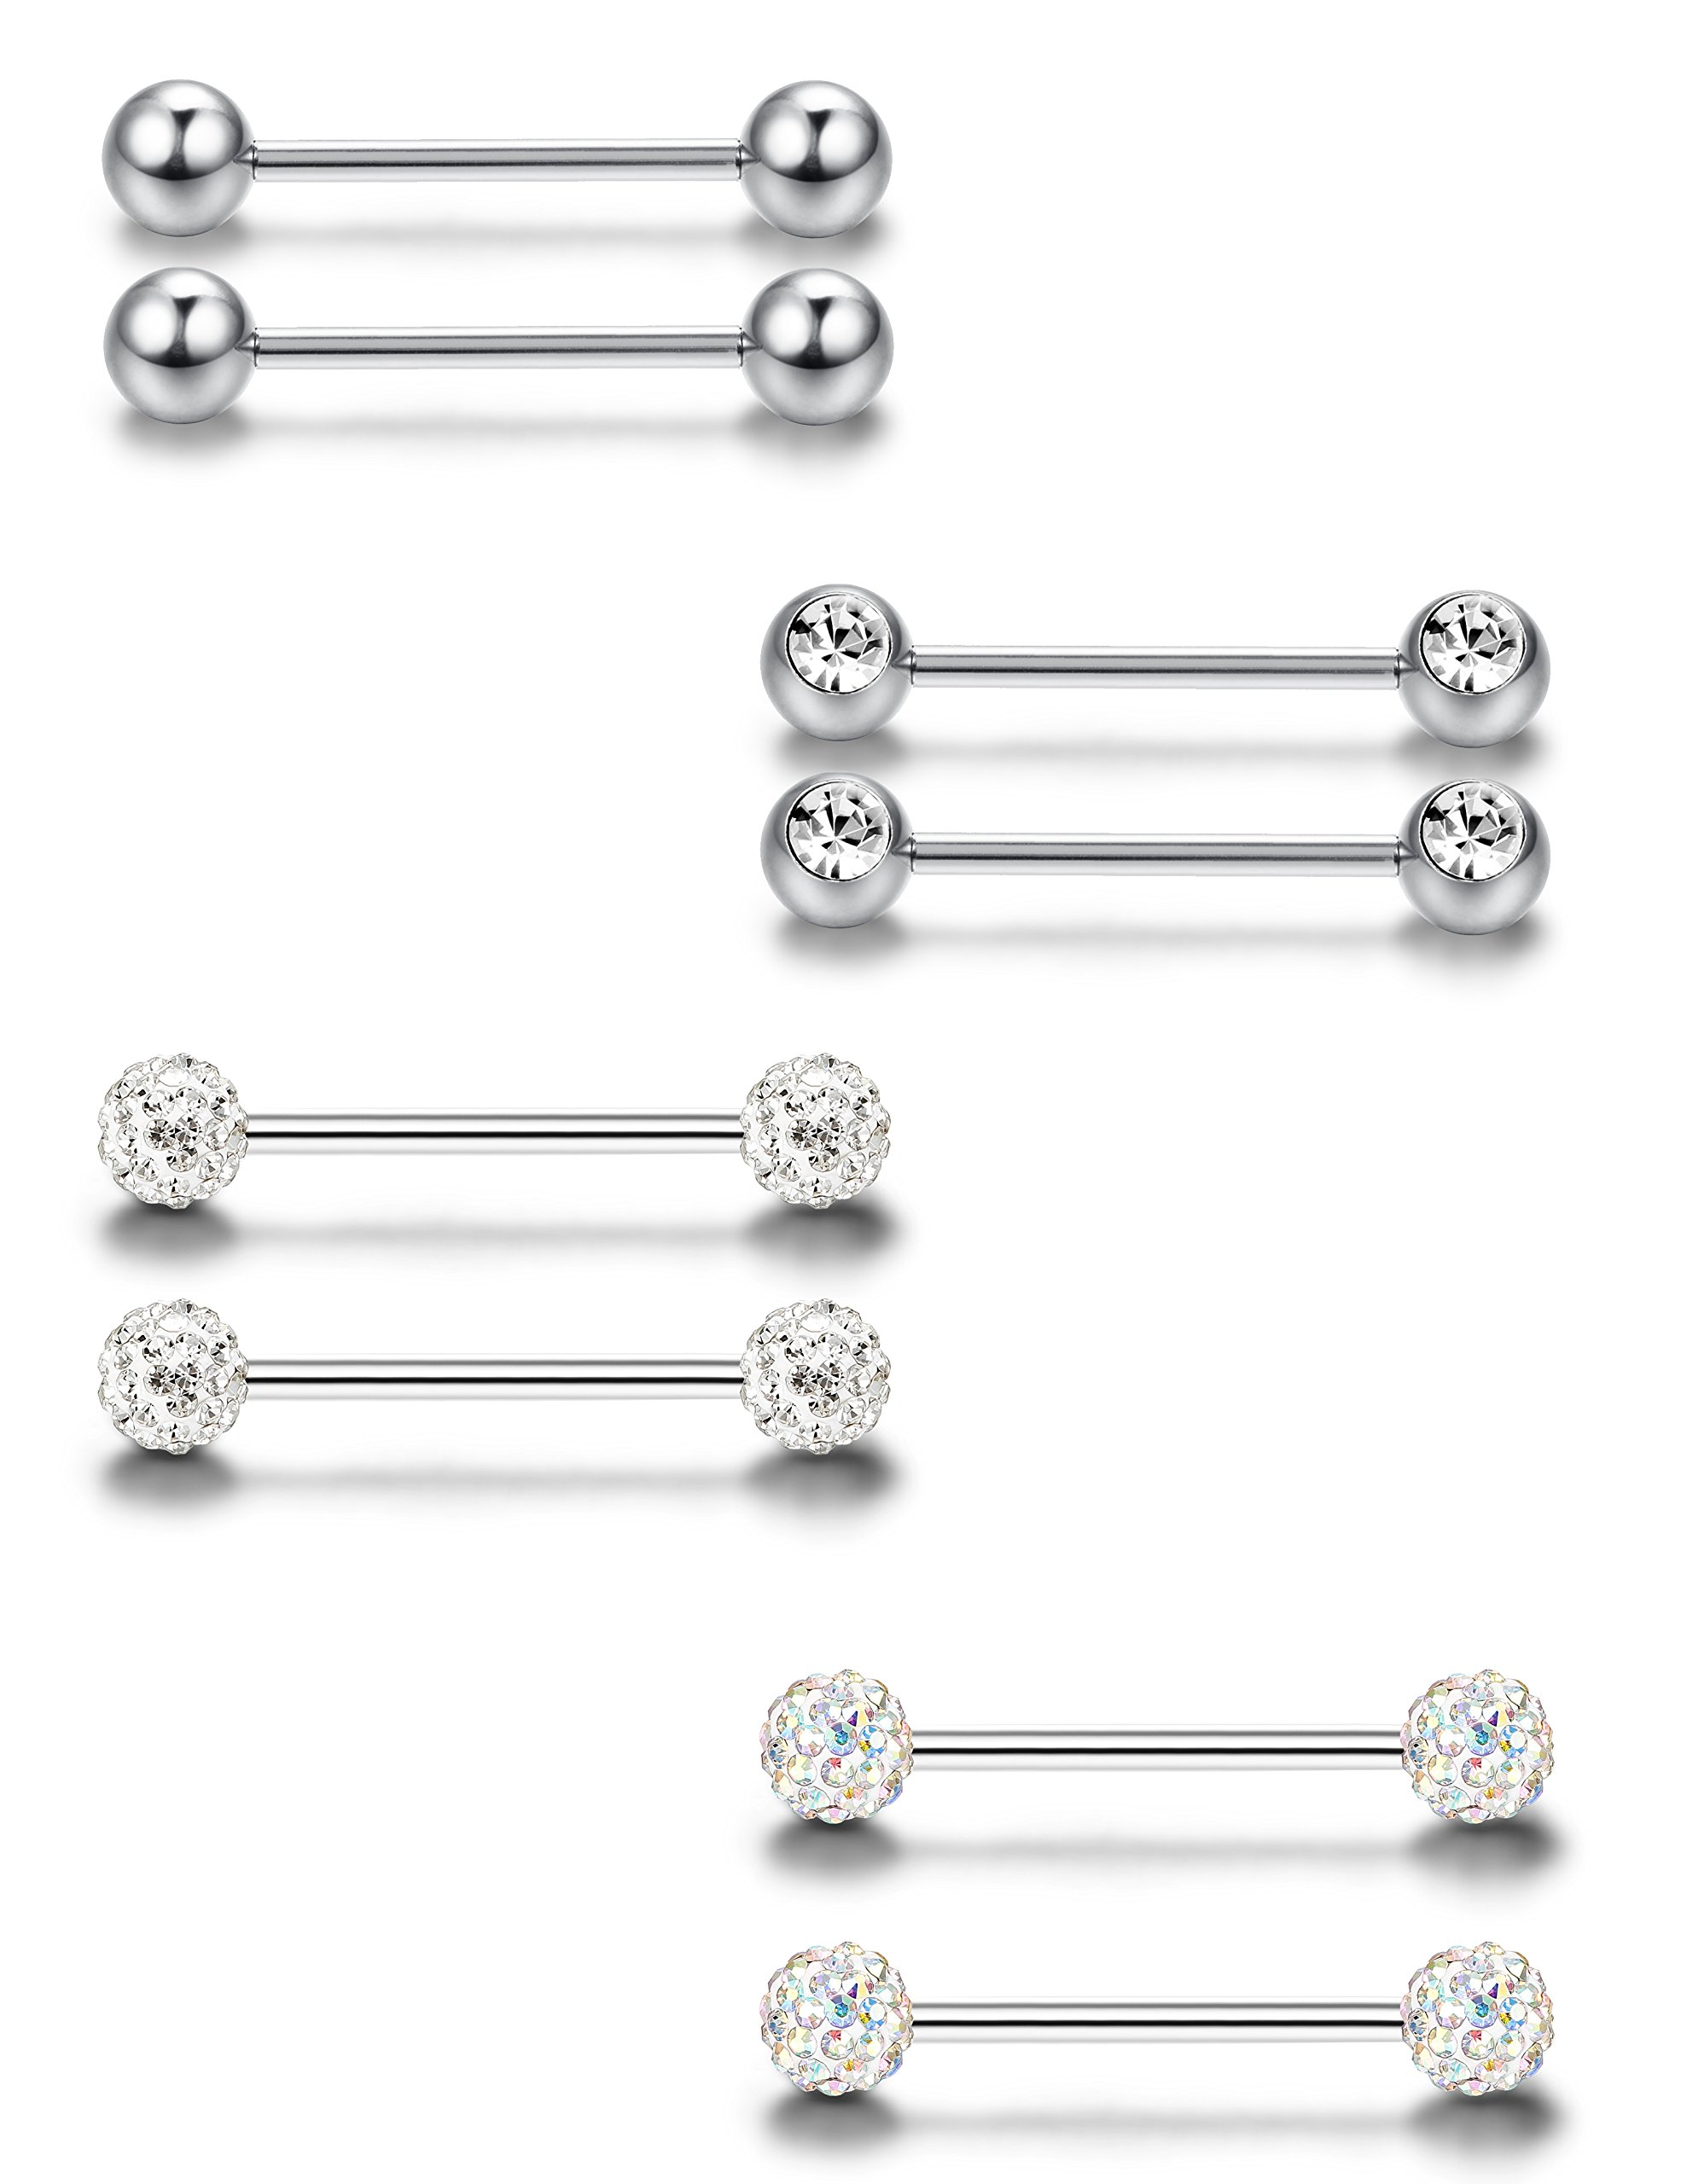 ORAZIO 4 Pairs 316L 14G Stainless Steel Nipple Ring Body Piercing Tongue Rings Bars Piercing for Women (B:4 Pairs, Silver)